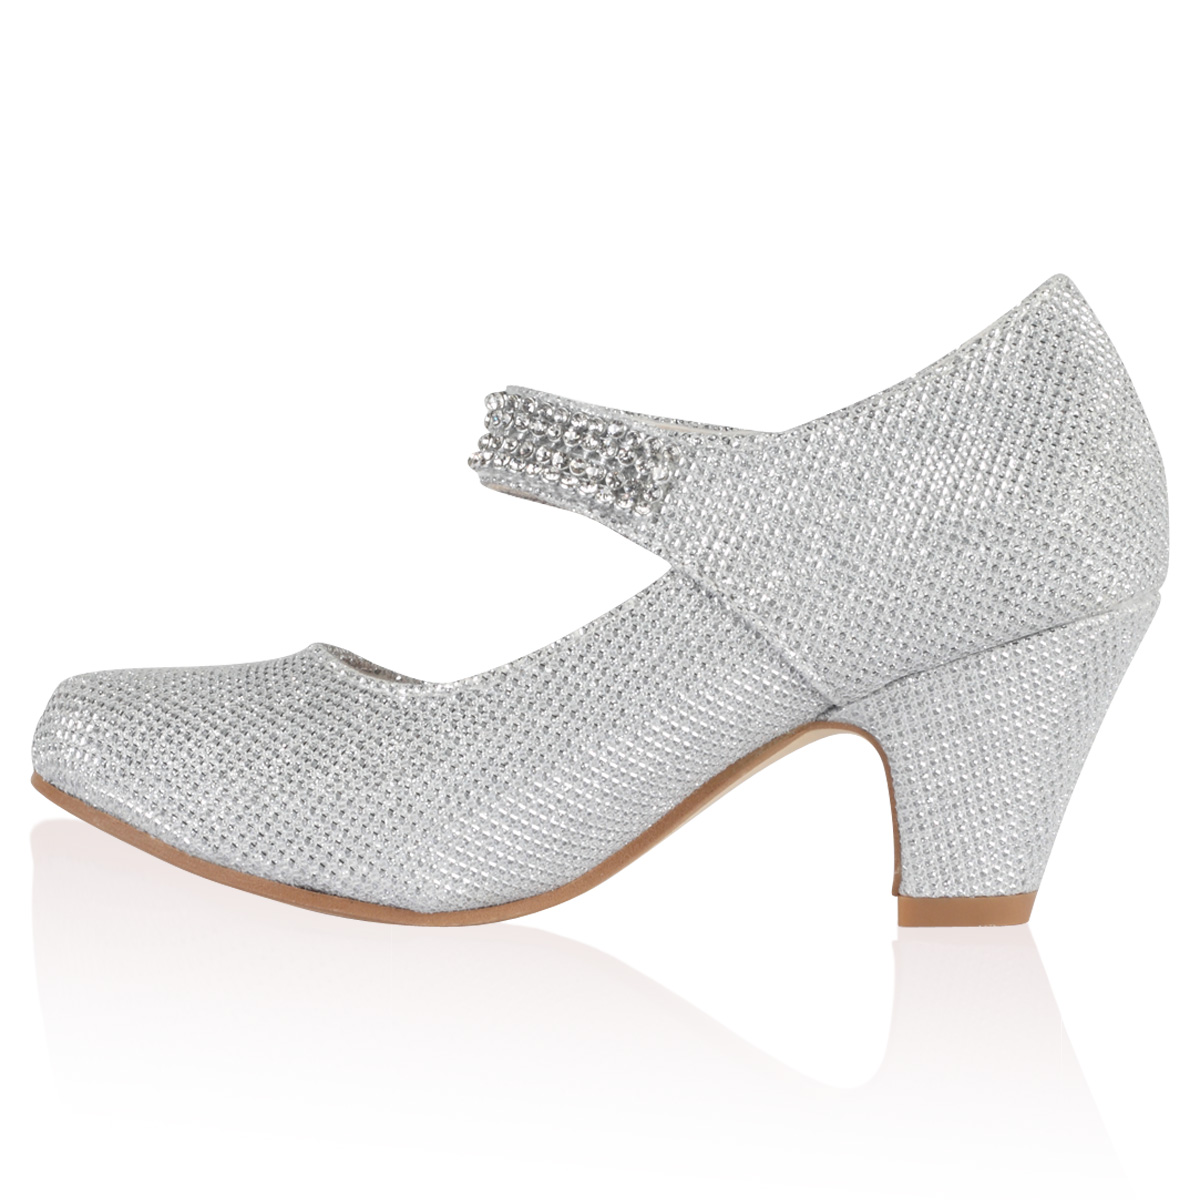 NEW GIRLS SILVER GLITTER KIDS DIAMANTE MARY JANE LOW HEEL PARTY ...